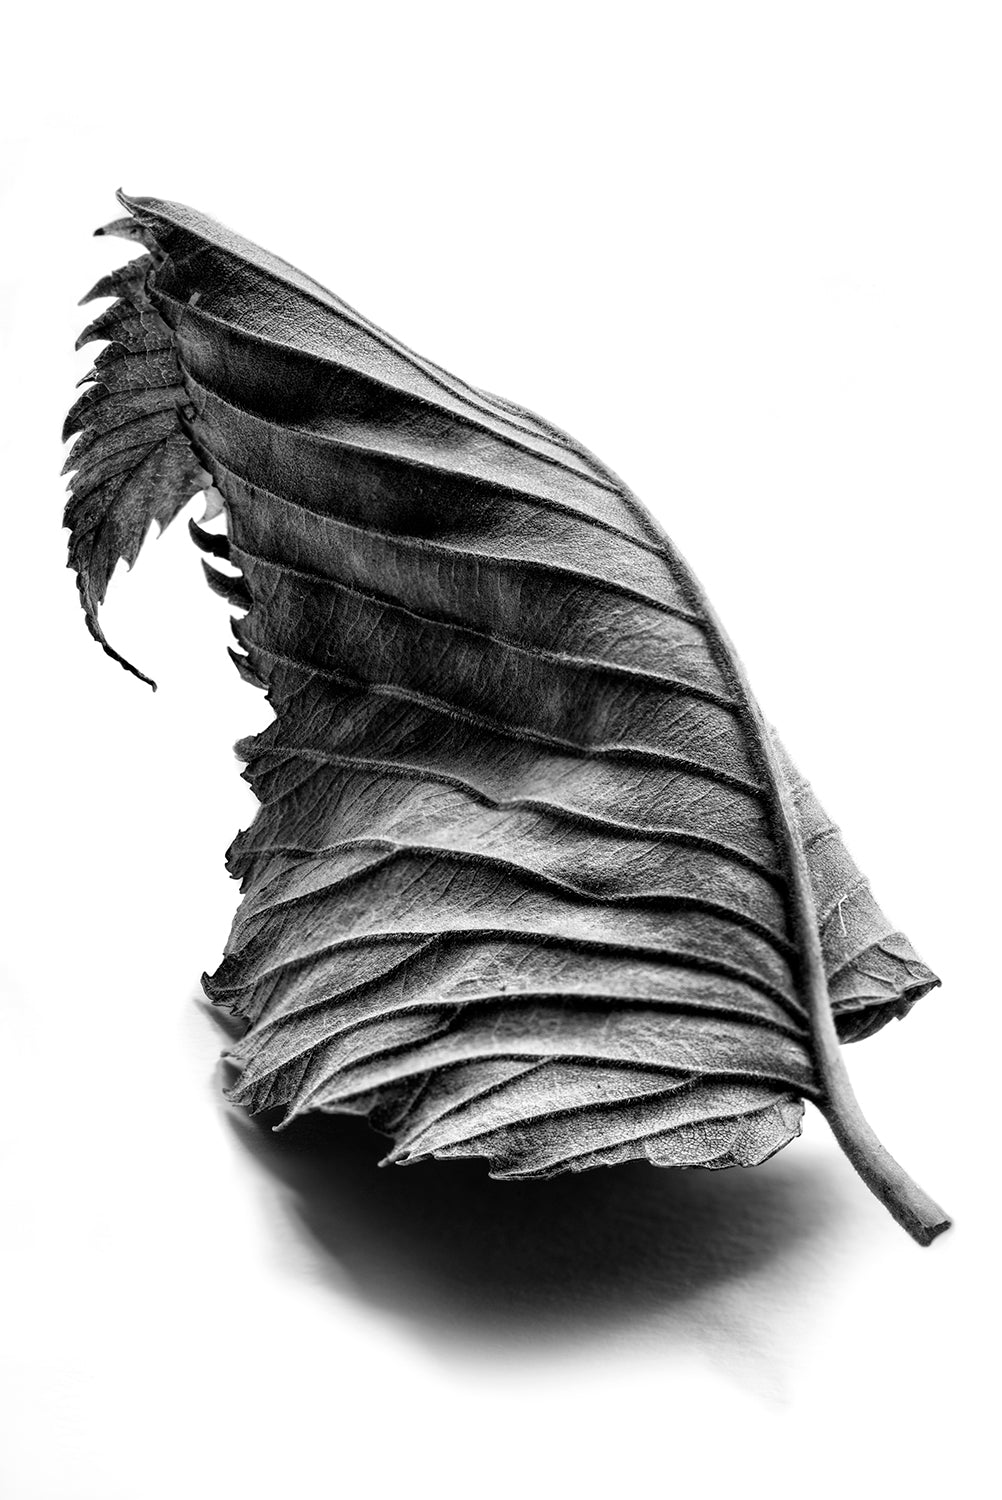 Dramatic Curled Leaf - Black and White Photograph by Keith Dotson. Buy a print.